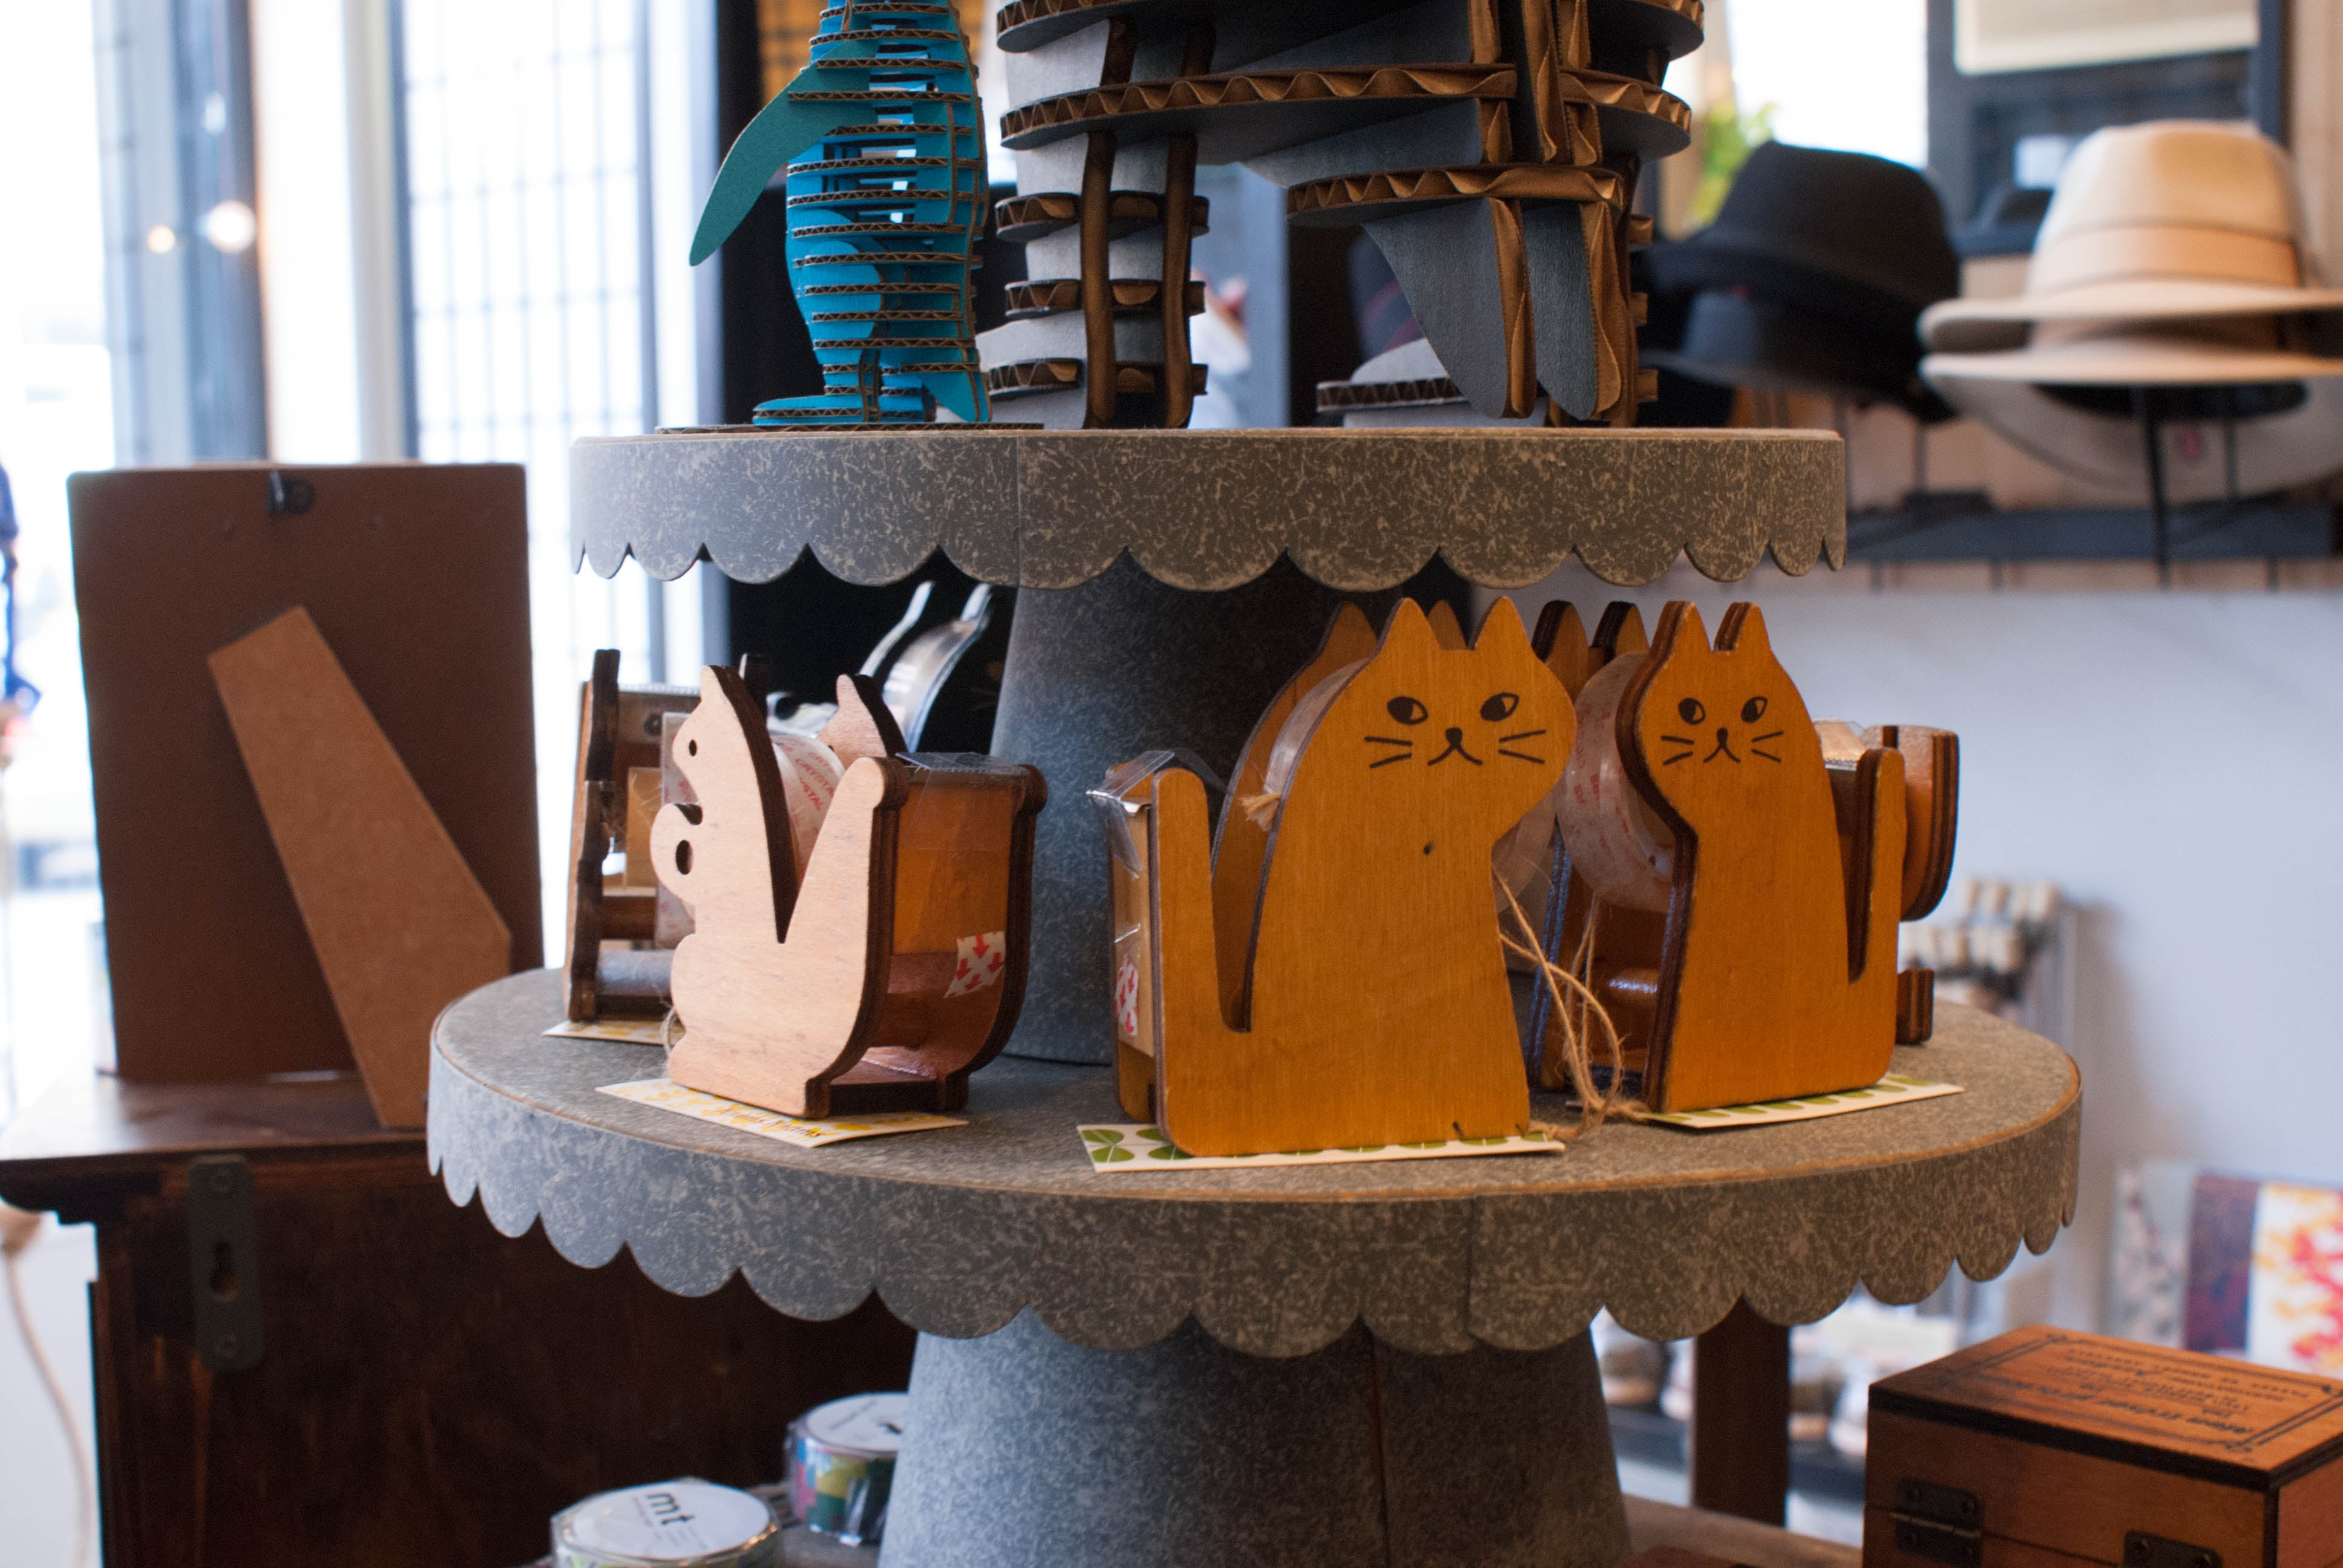 The stories we have about these damn wooden cat zakka items...